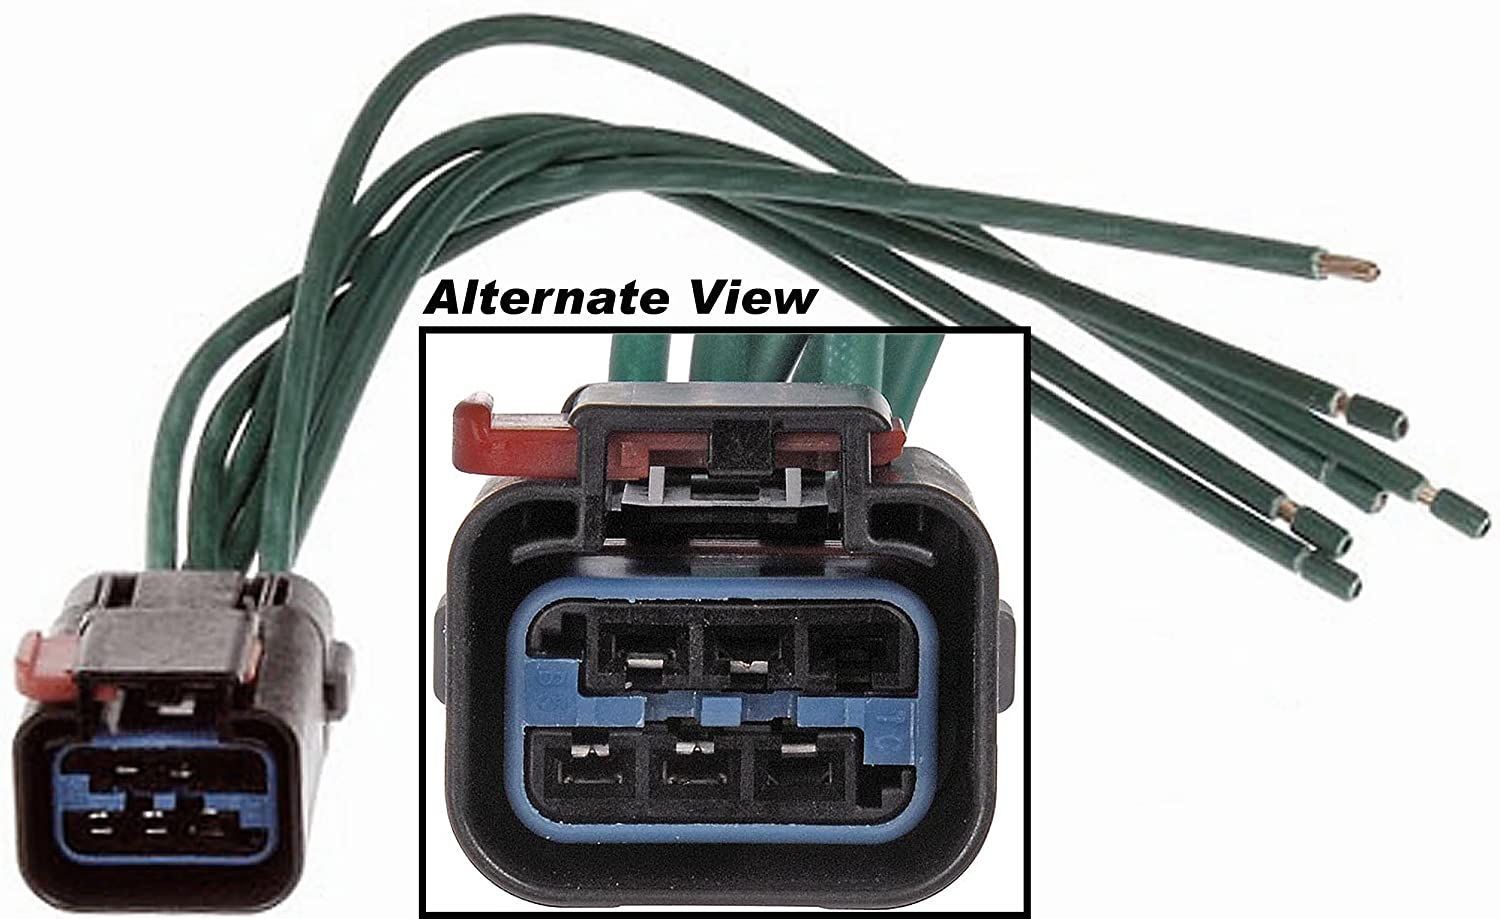 repair wires that came out of cr wire harness connector